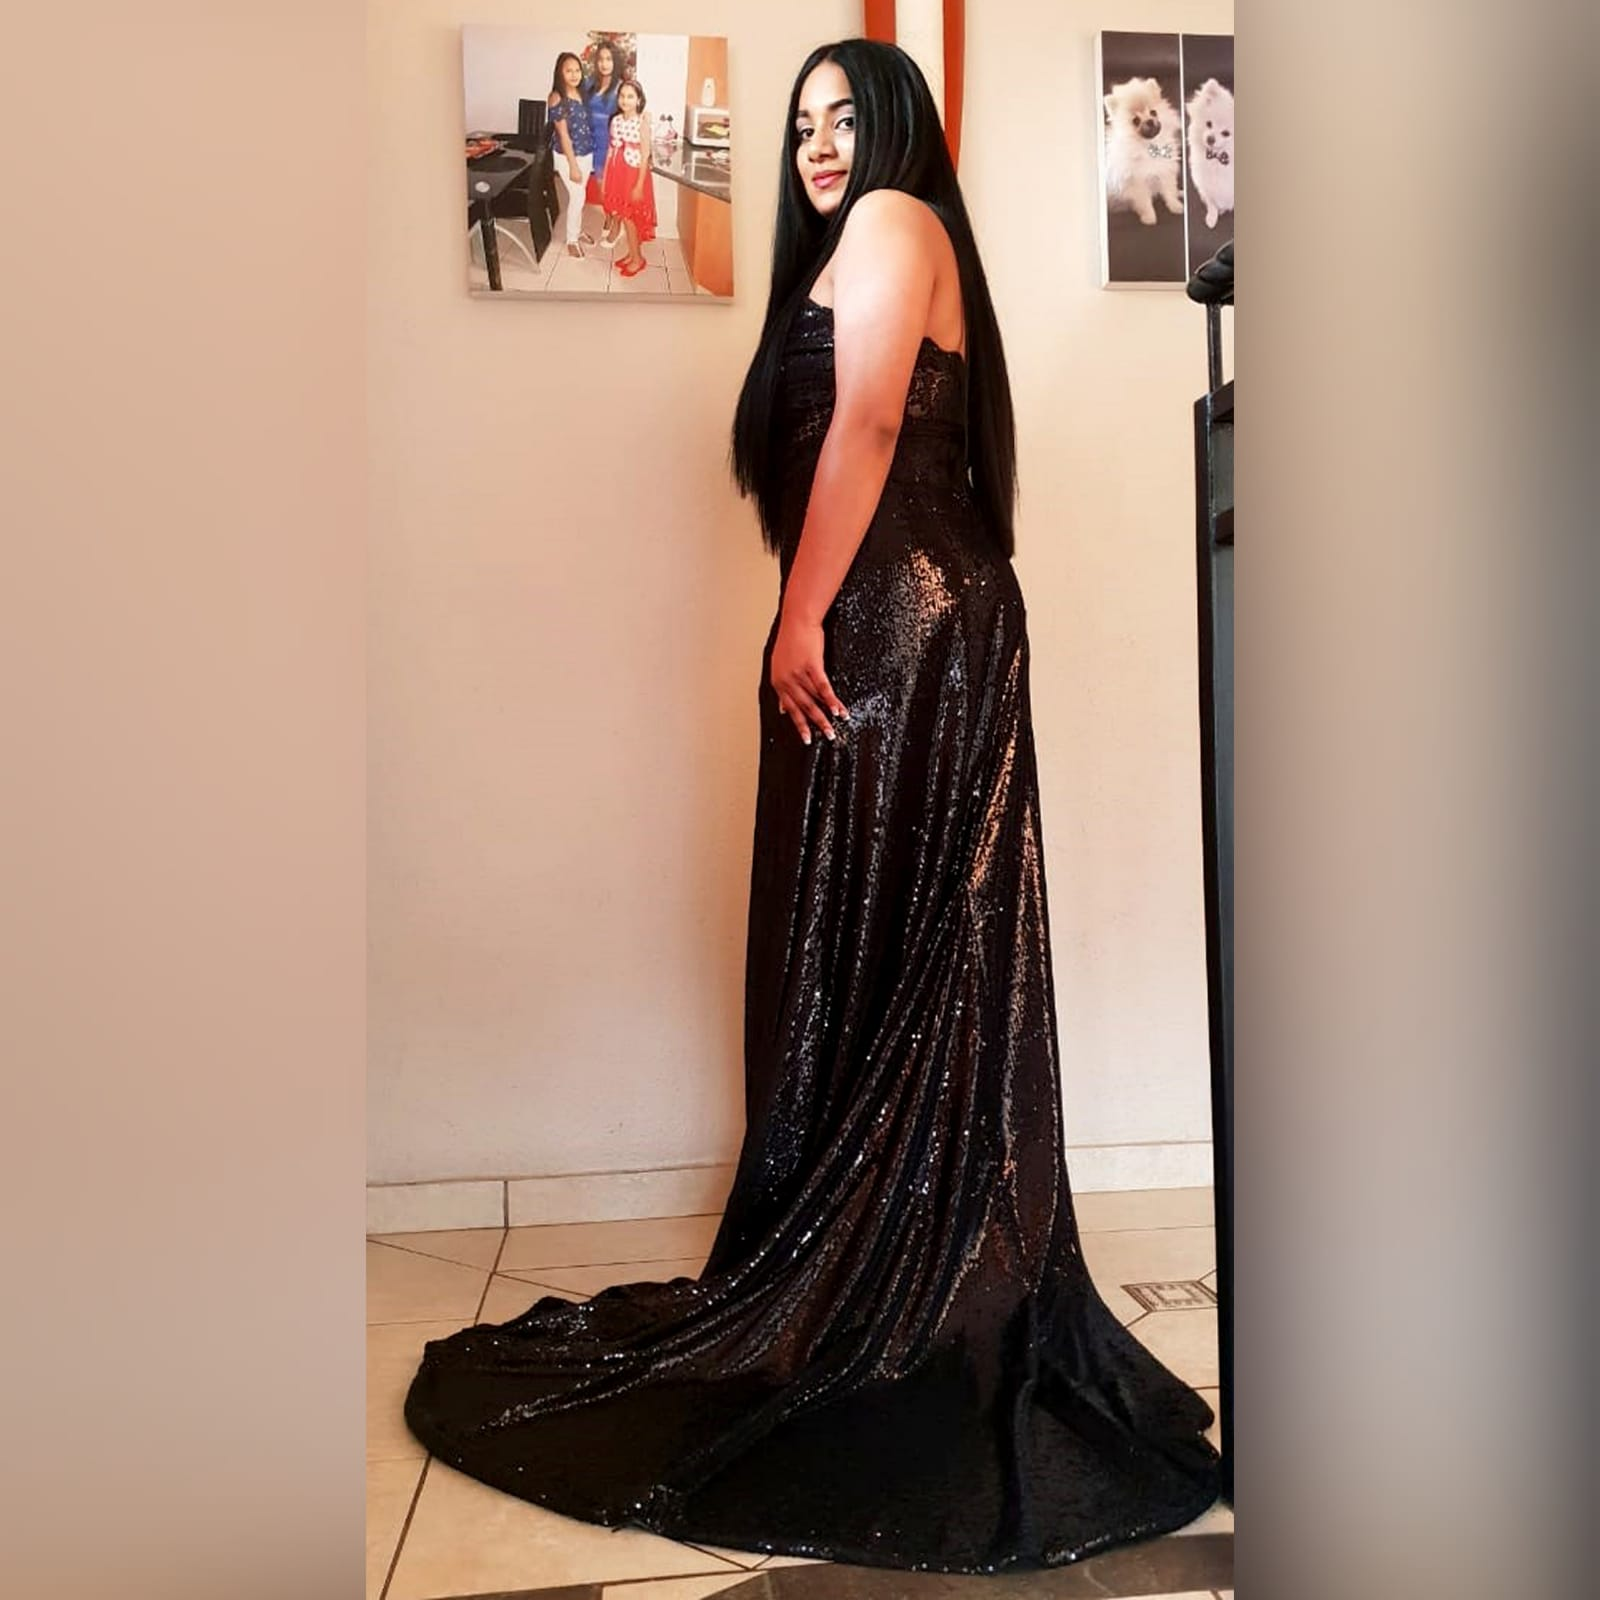 Long black sequins boob tube prom dress 2 long black sequins boob tube prom dress with a sheer lace back and side tummy. High slit and a train.